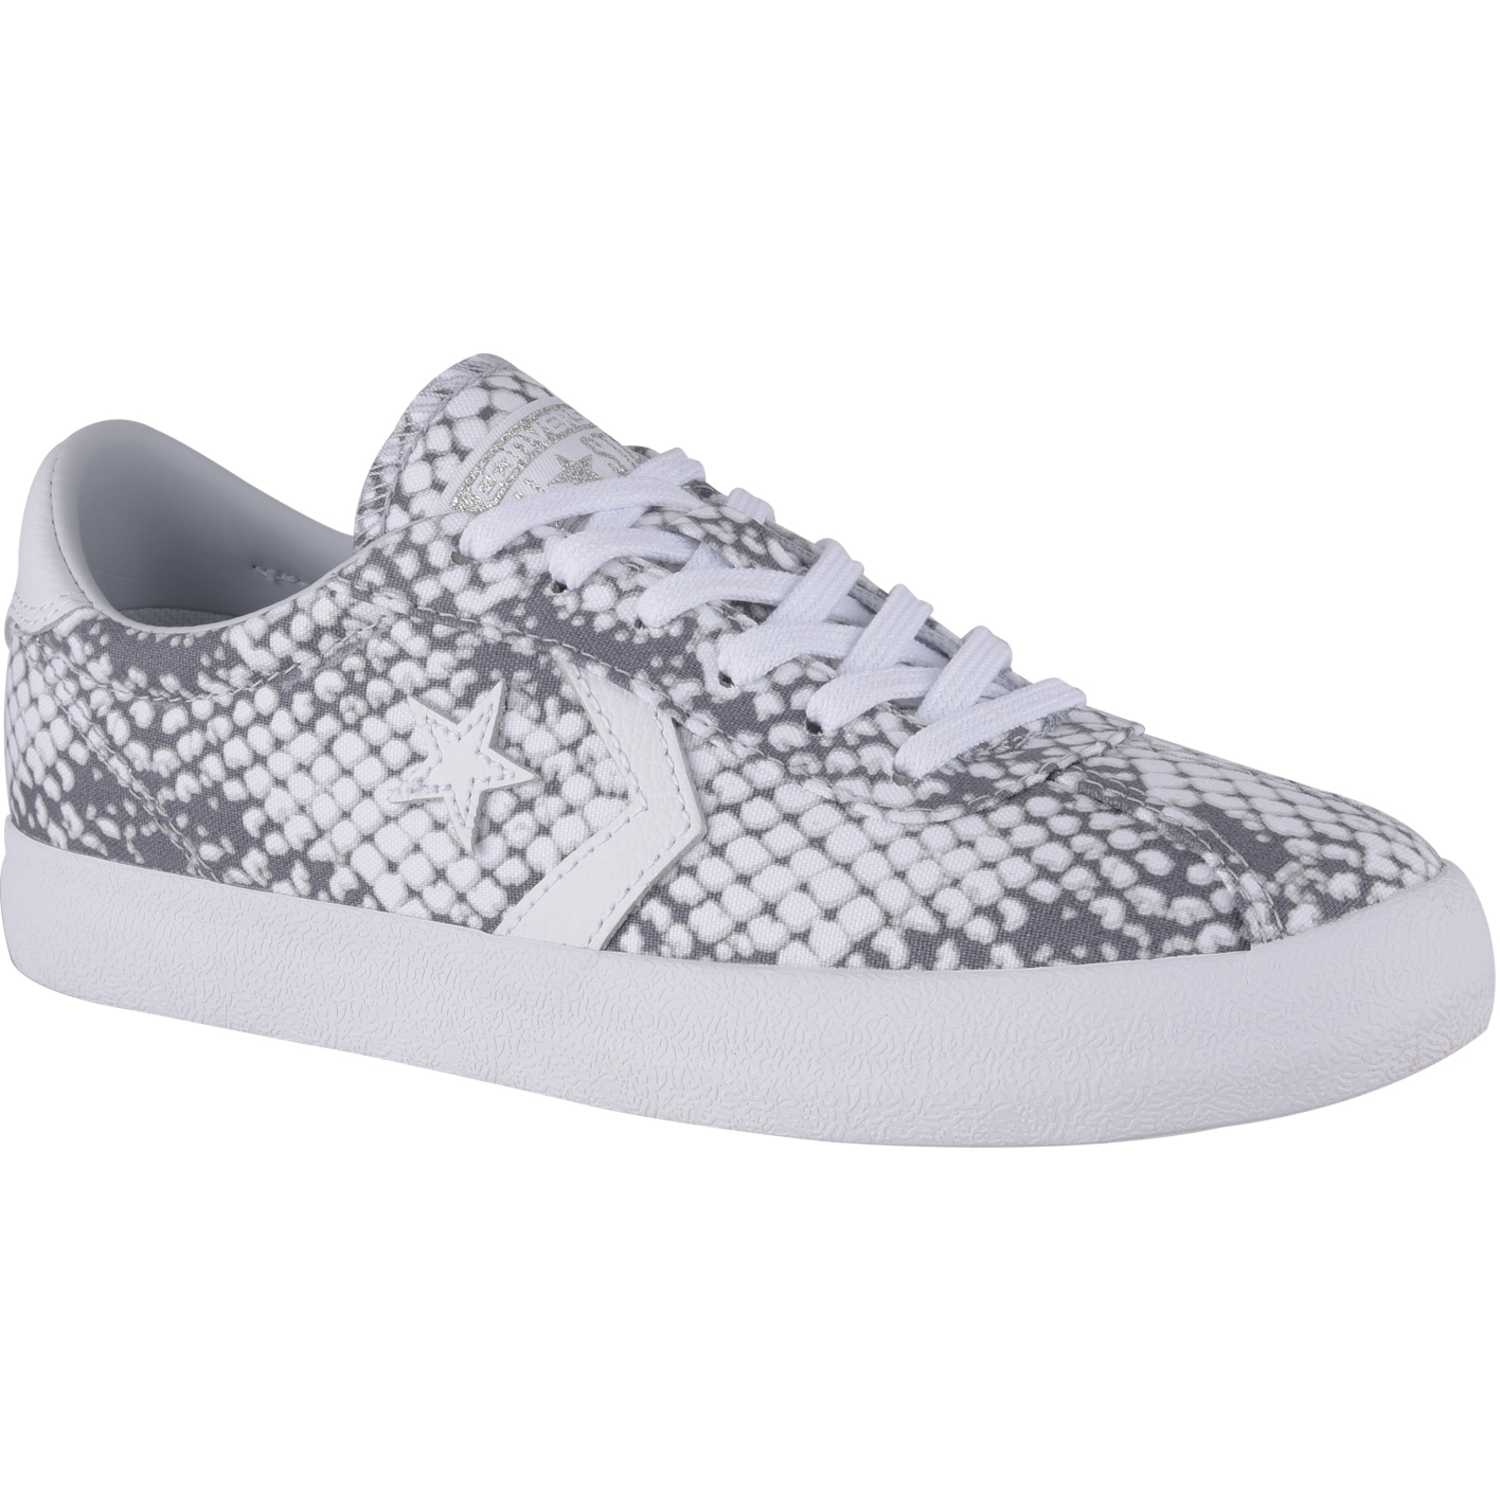 42c0f676d6 Zapatilla de Jovencita Converse Plateado / blanco break point animal print